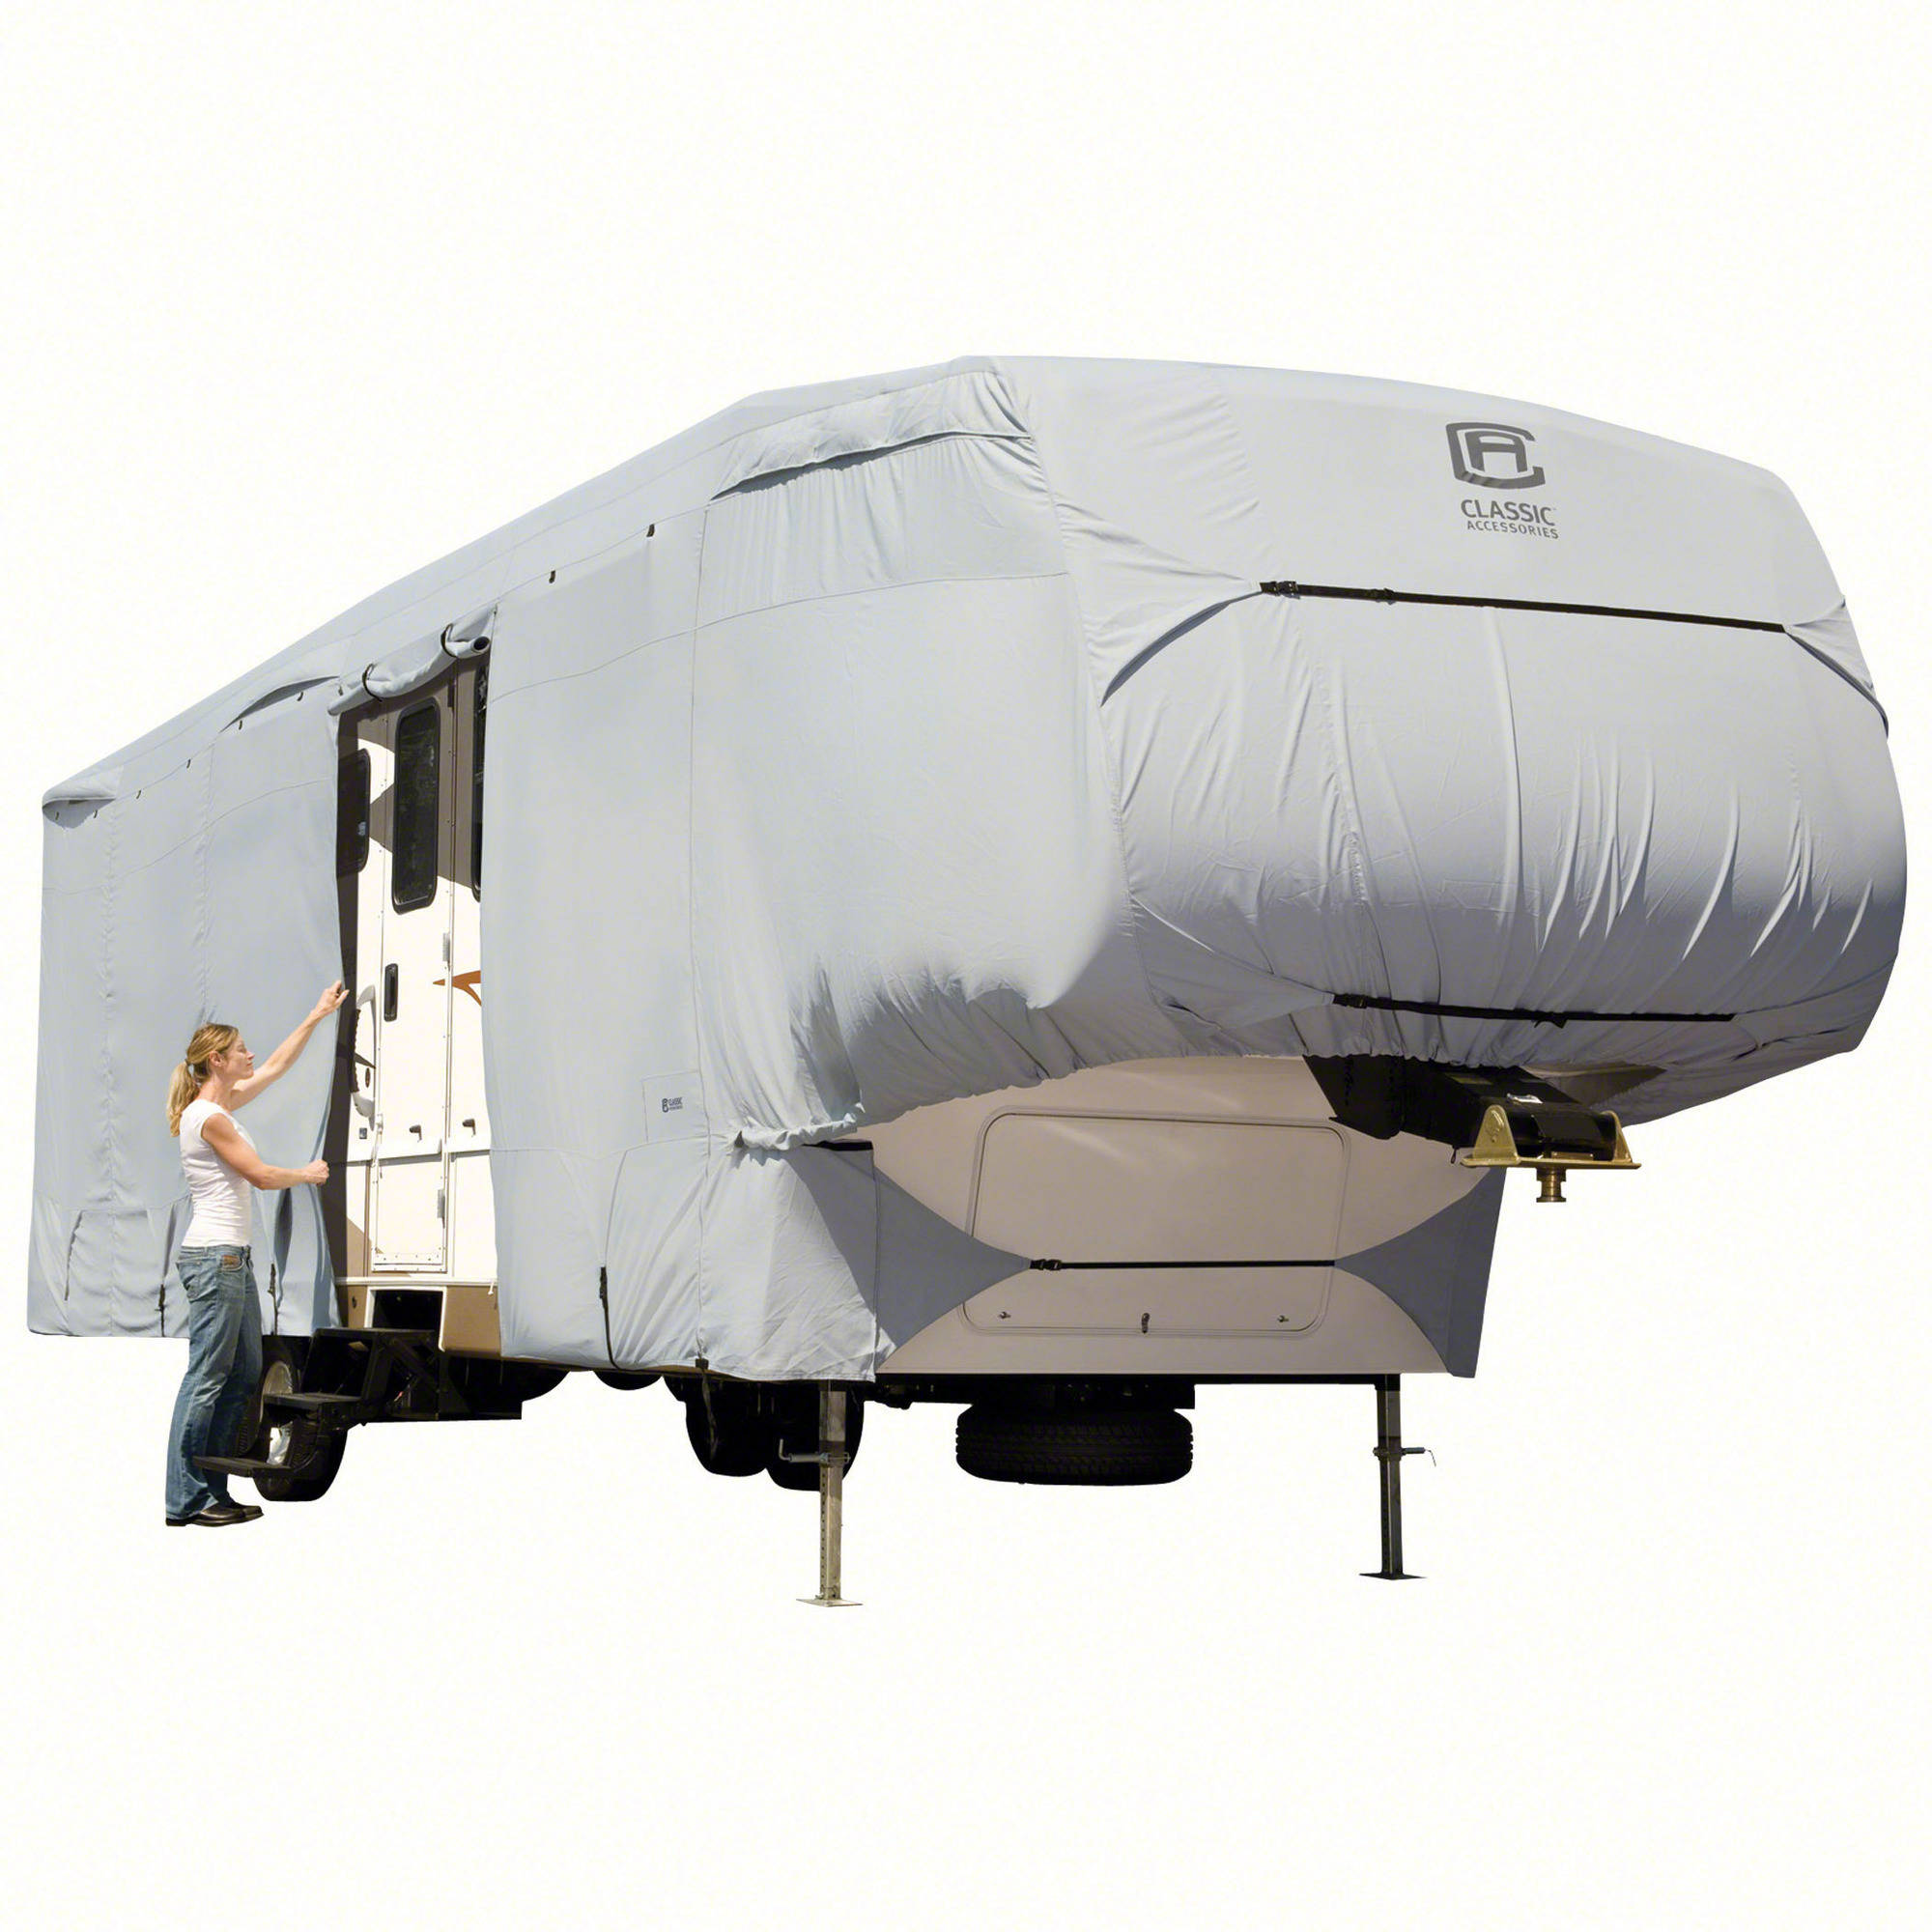 Classic Accessories OverDrive PermaPRO Deluxe 5th Wheel Cover, Fits 20' - 44' RVs - Lightweight Ripstop and Water Repellent RV Cover